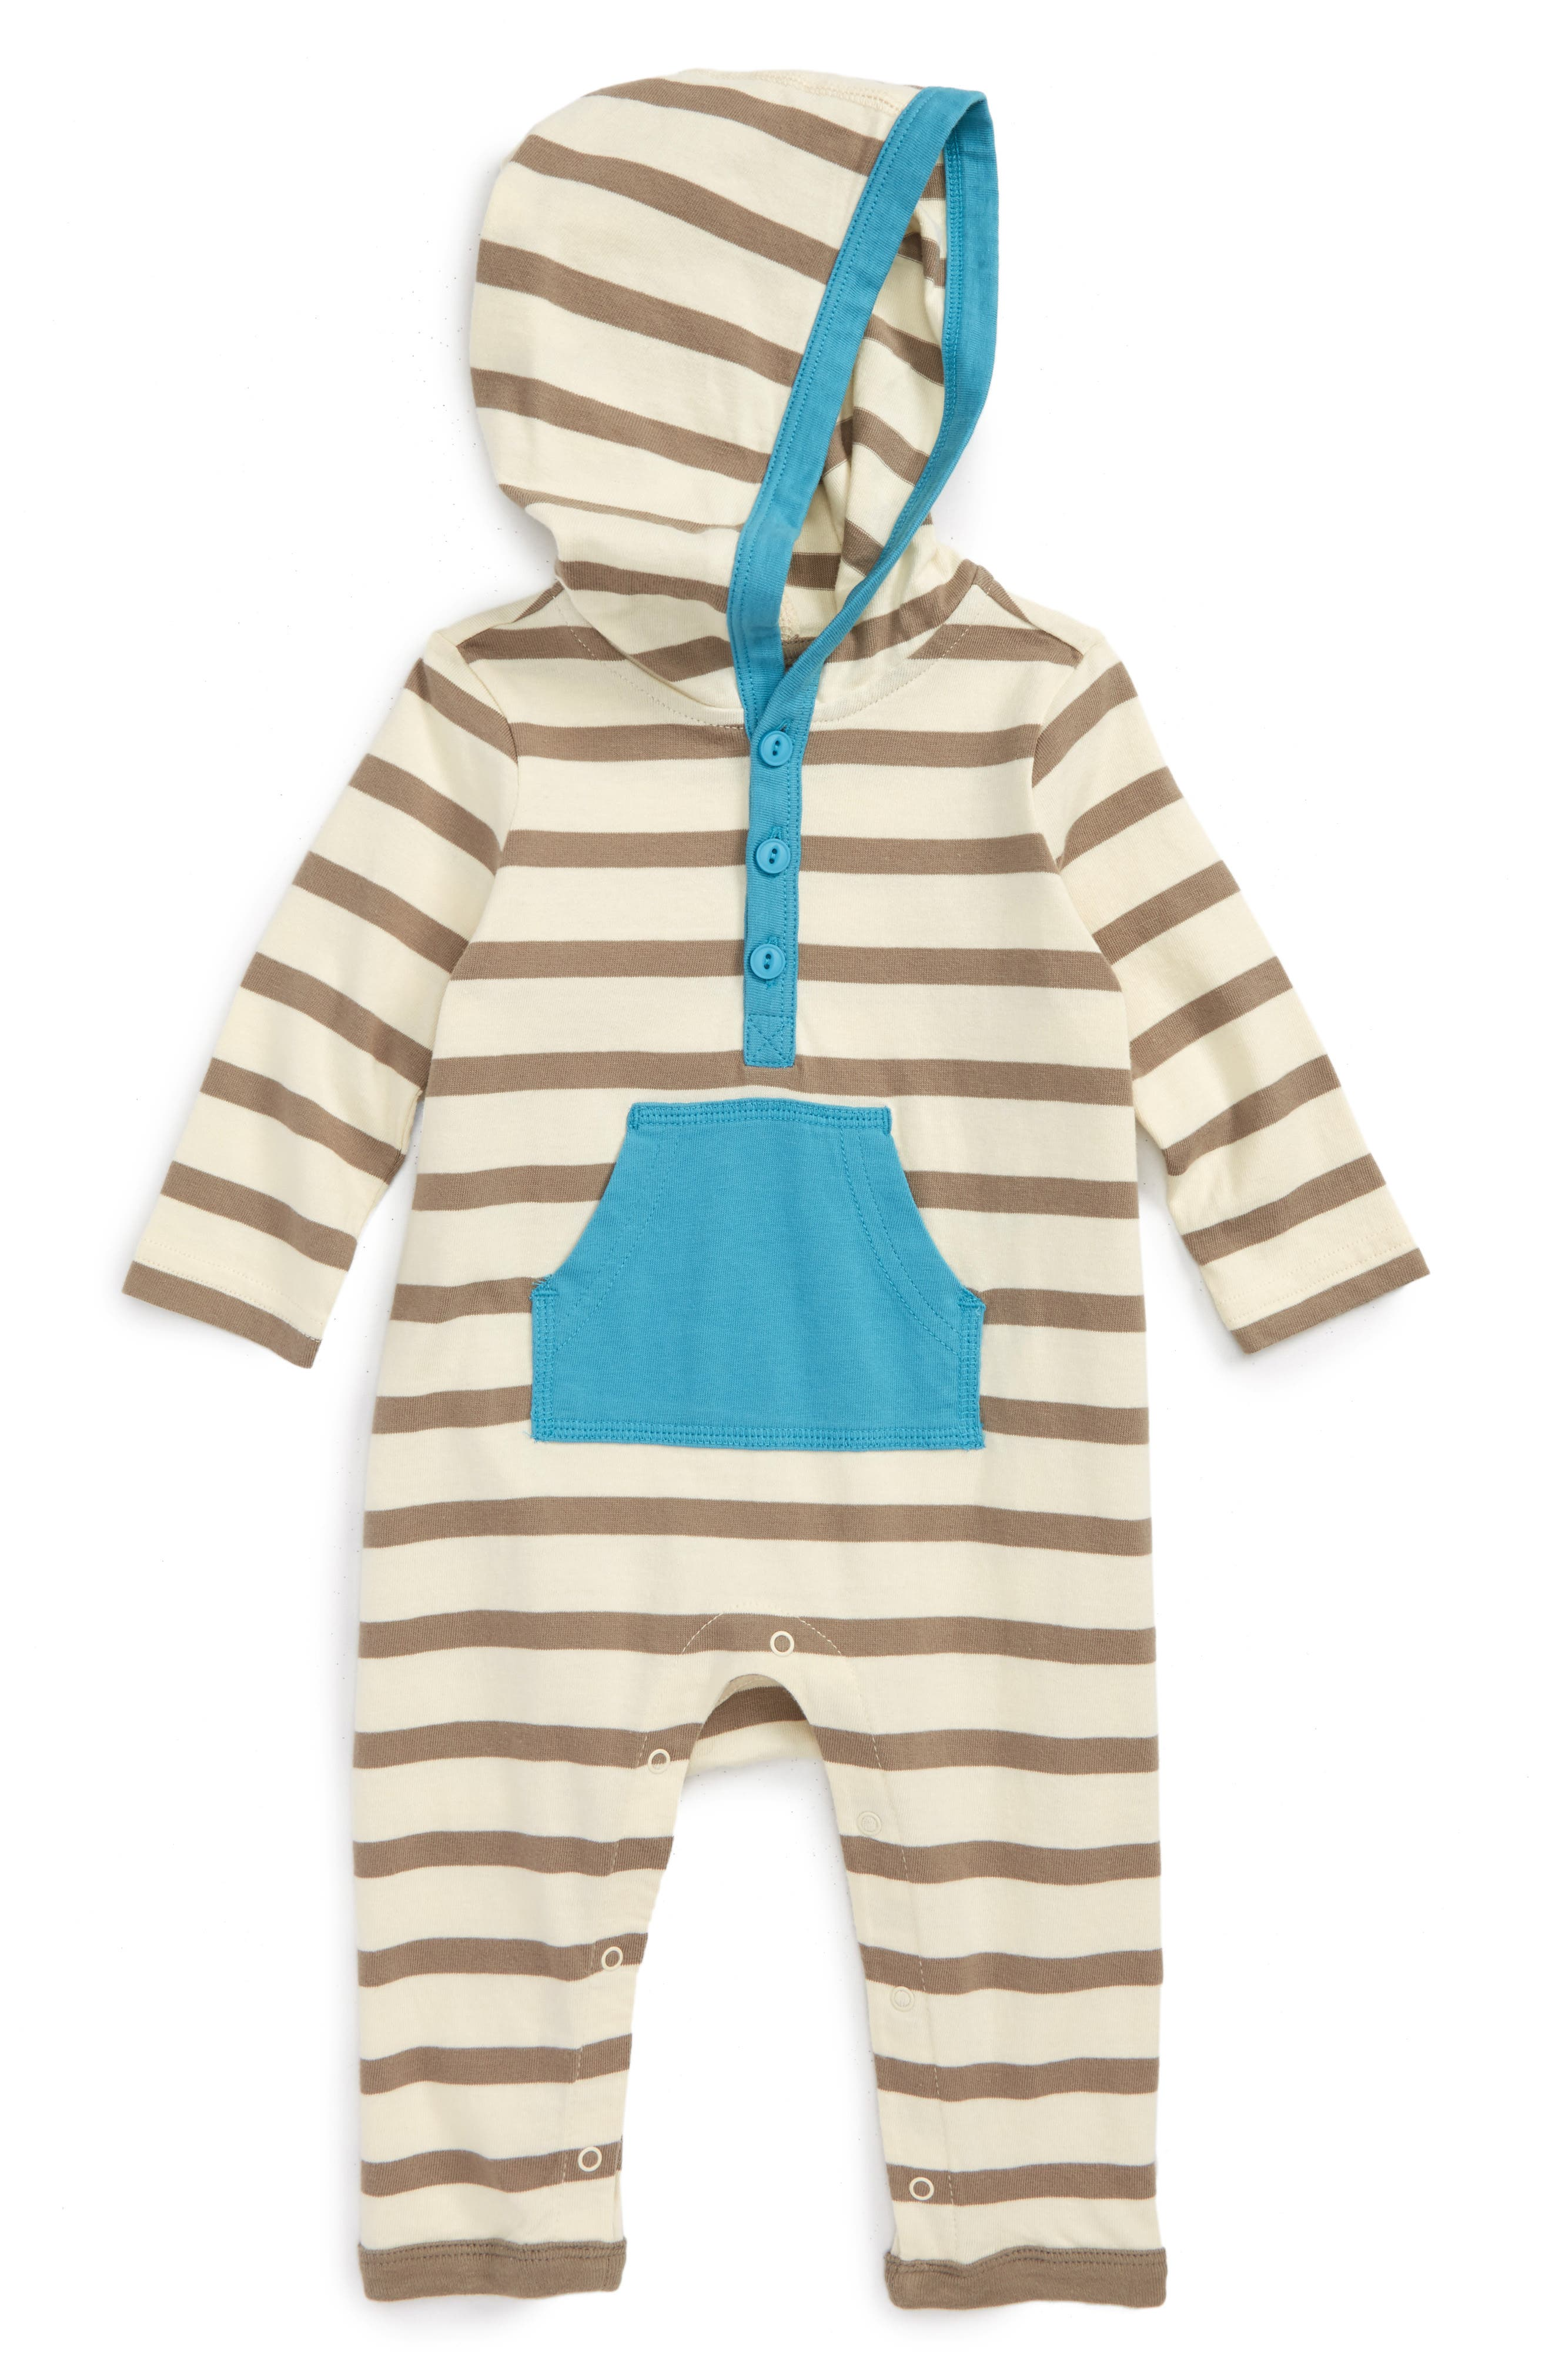 Alternate Image 1 Selected - Tea Collection Fyne Hooded Romper (Baby Boys)